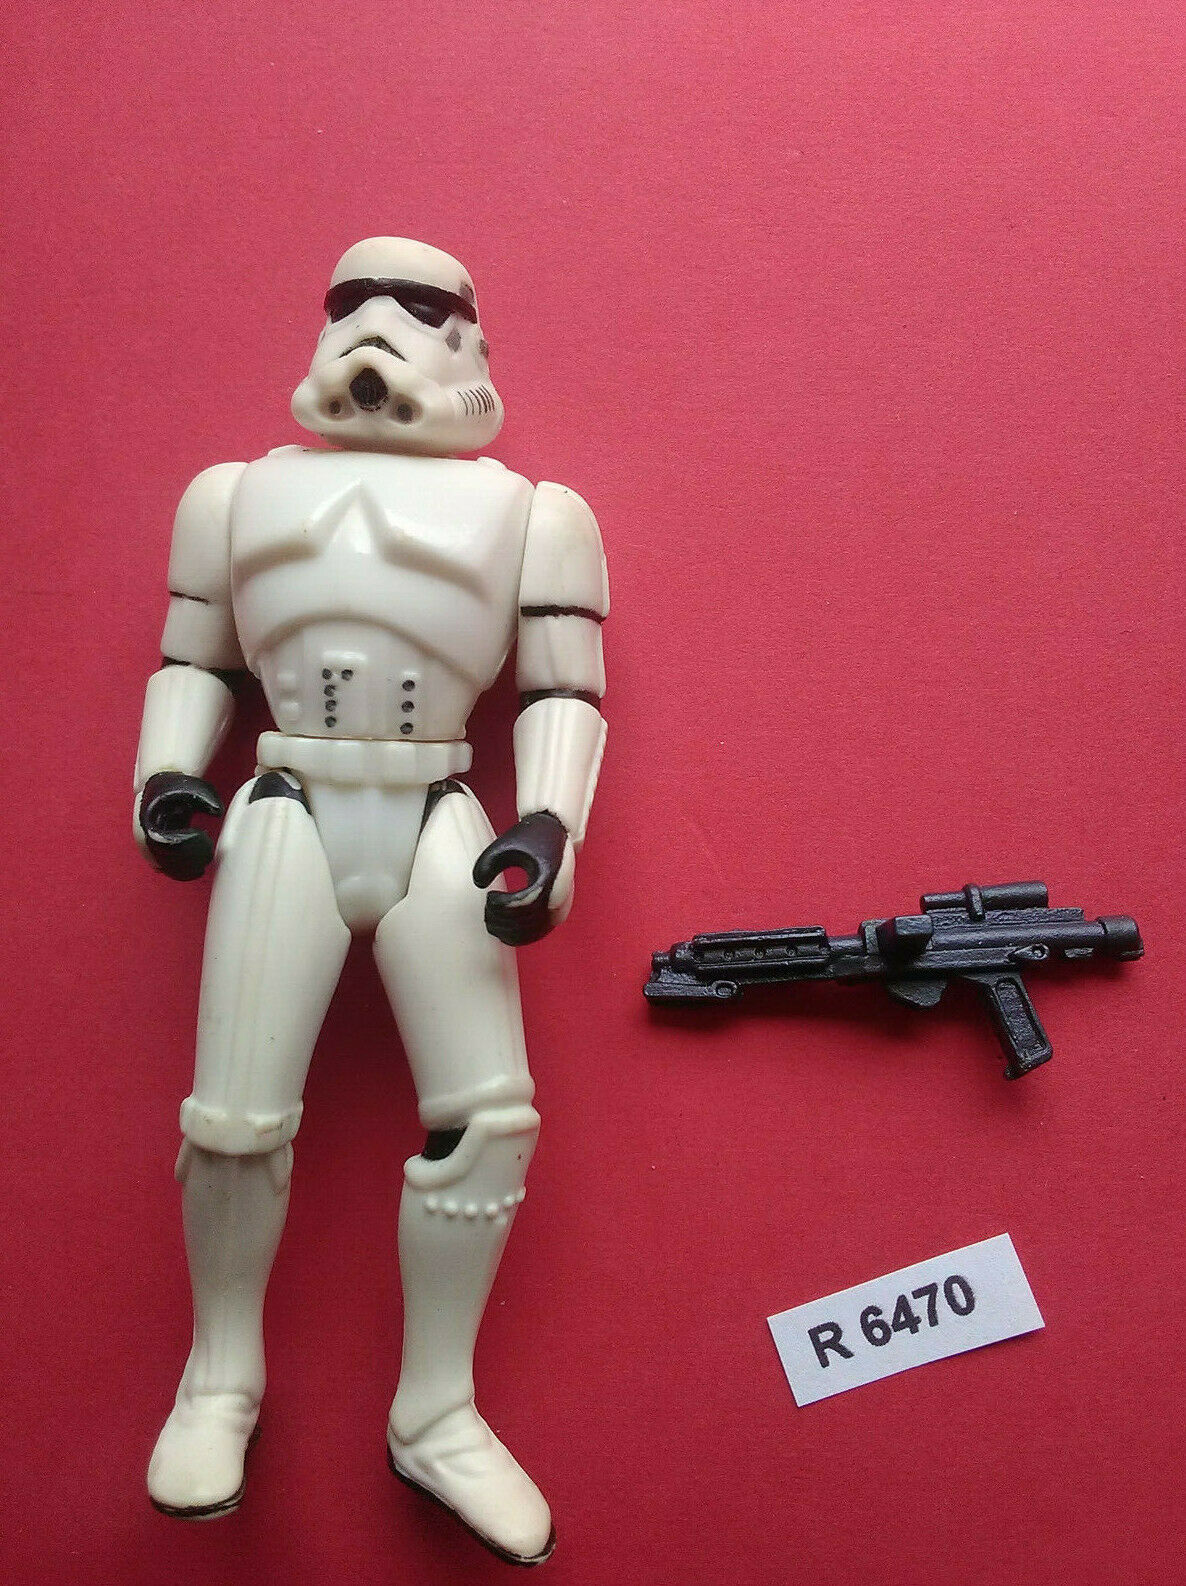 StarWars figurine : STAR WARS - STORMTROOPER AVEC ARME - EMPIRE - ANNEE 1995 - FIGURINE - REF 6470